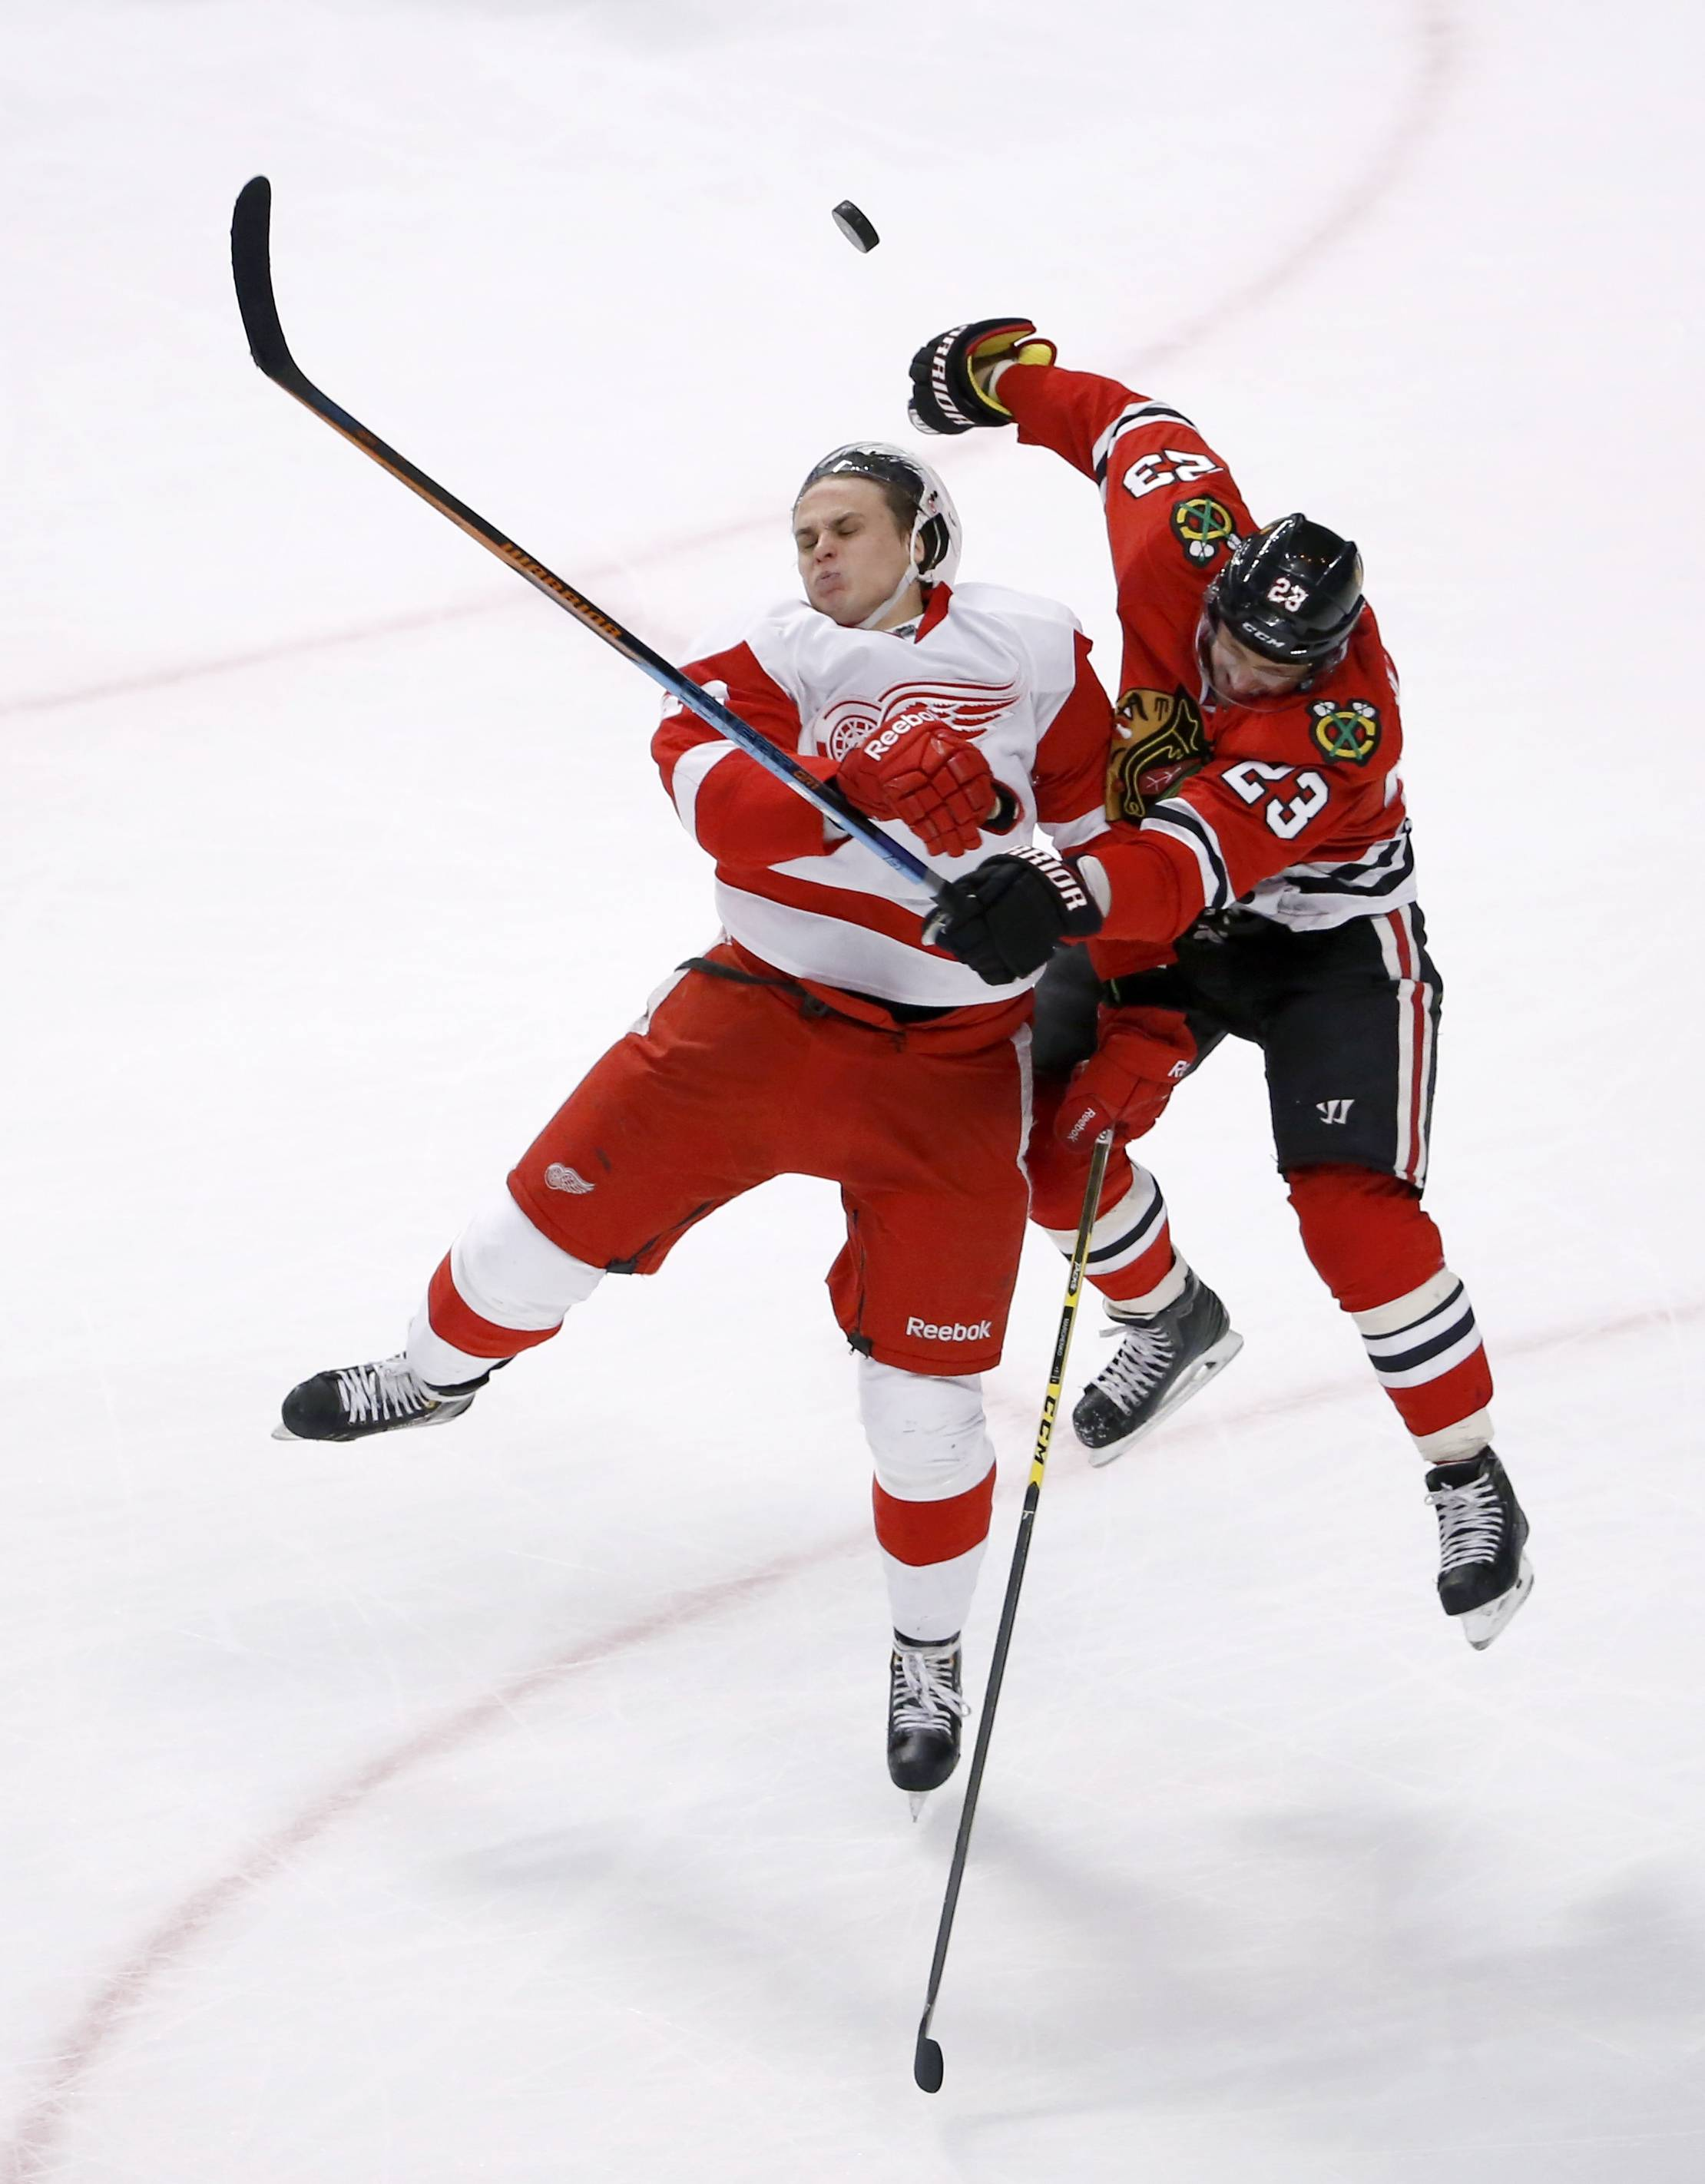 The Blackhawks' Kris Versteeg and the Red Wings' Alexei Marchenko collide going for the puck during overtime Wednesday at the United Center. The Hawks lost 3-2 in a shootout.